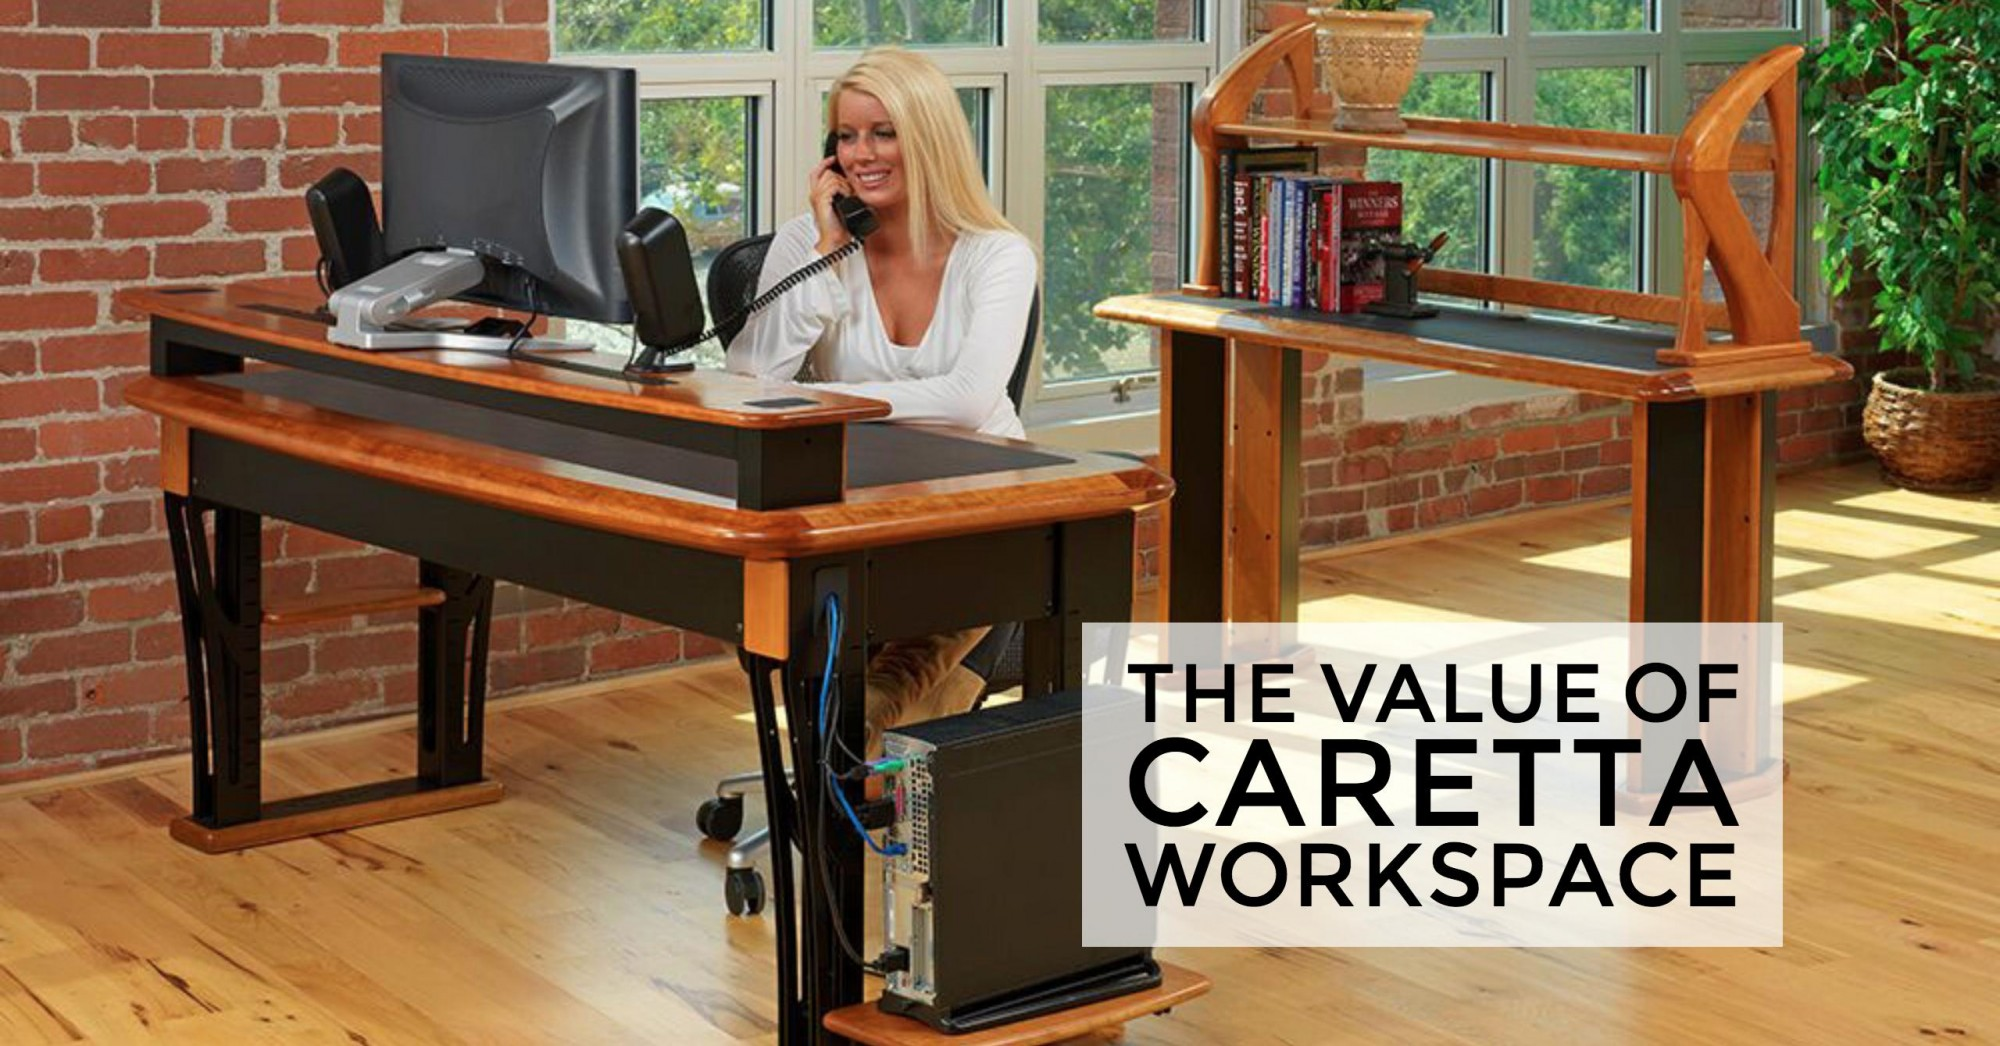 The Value of Caretta Workspace